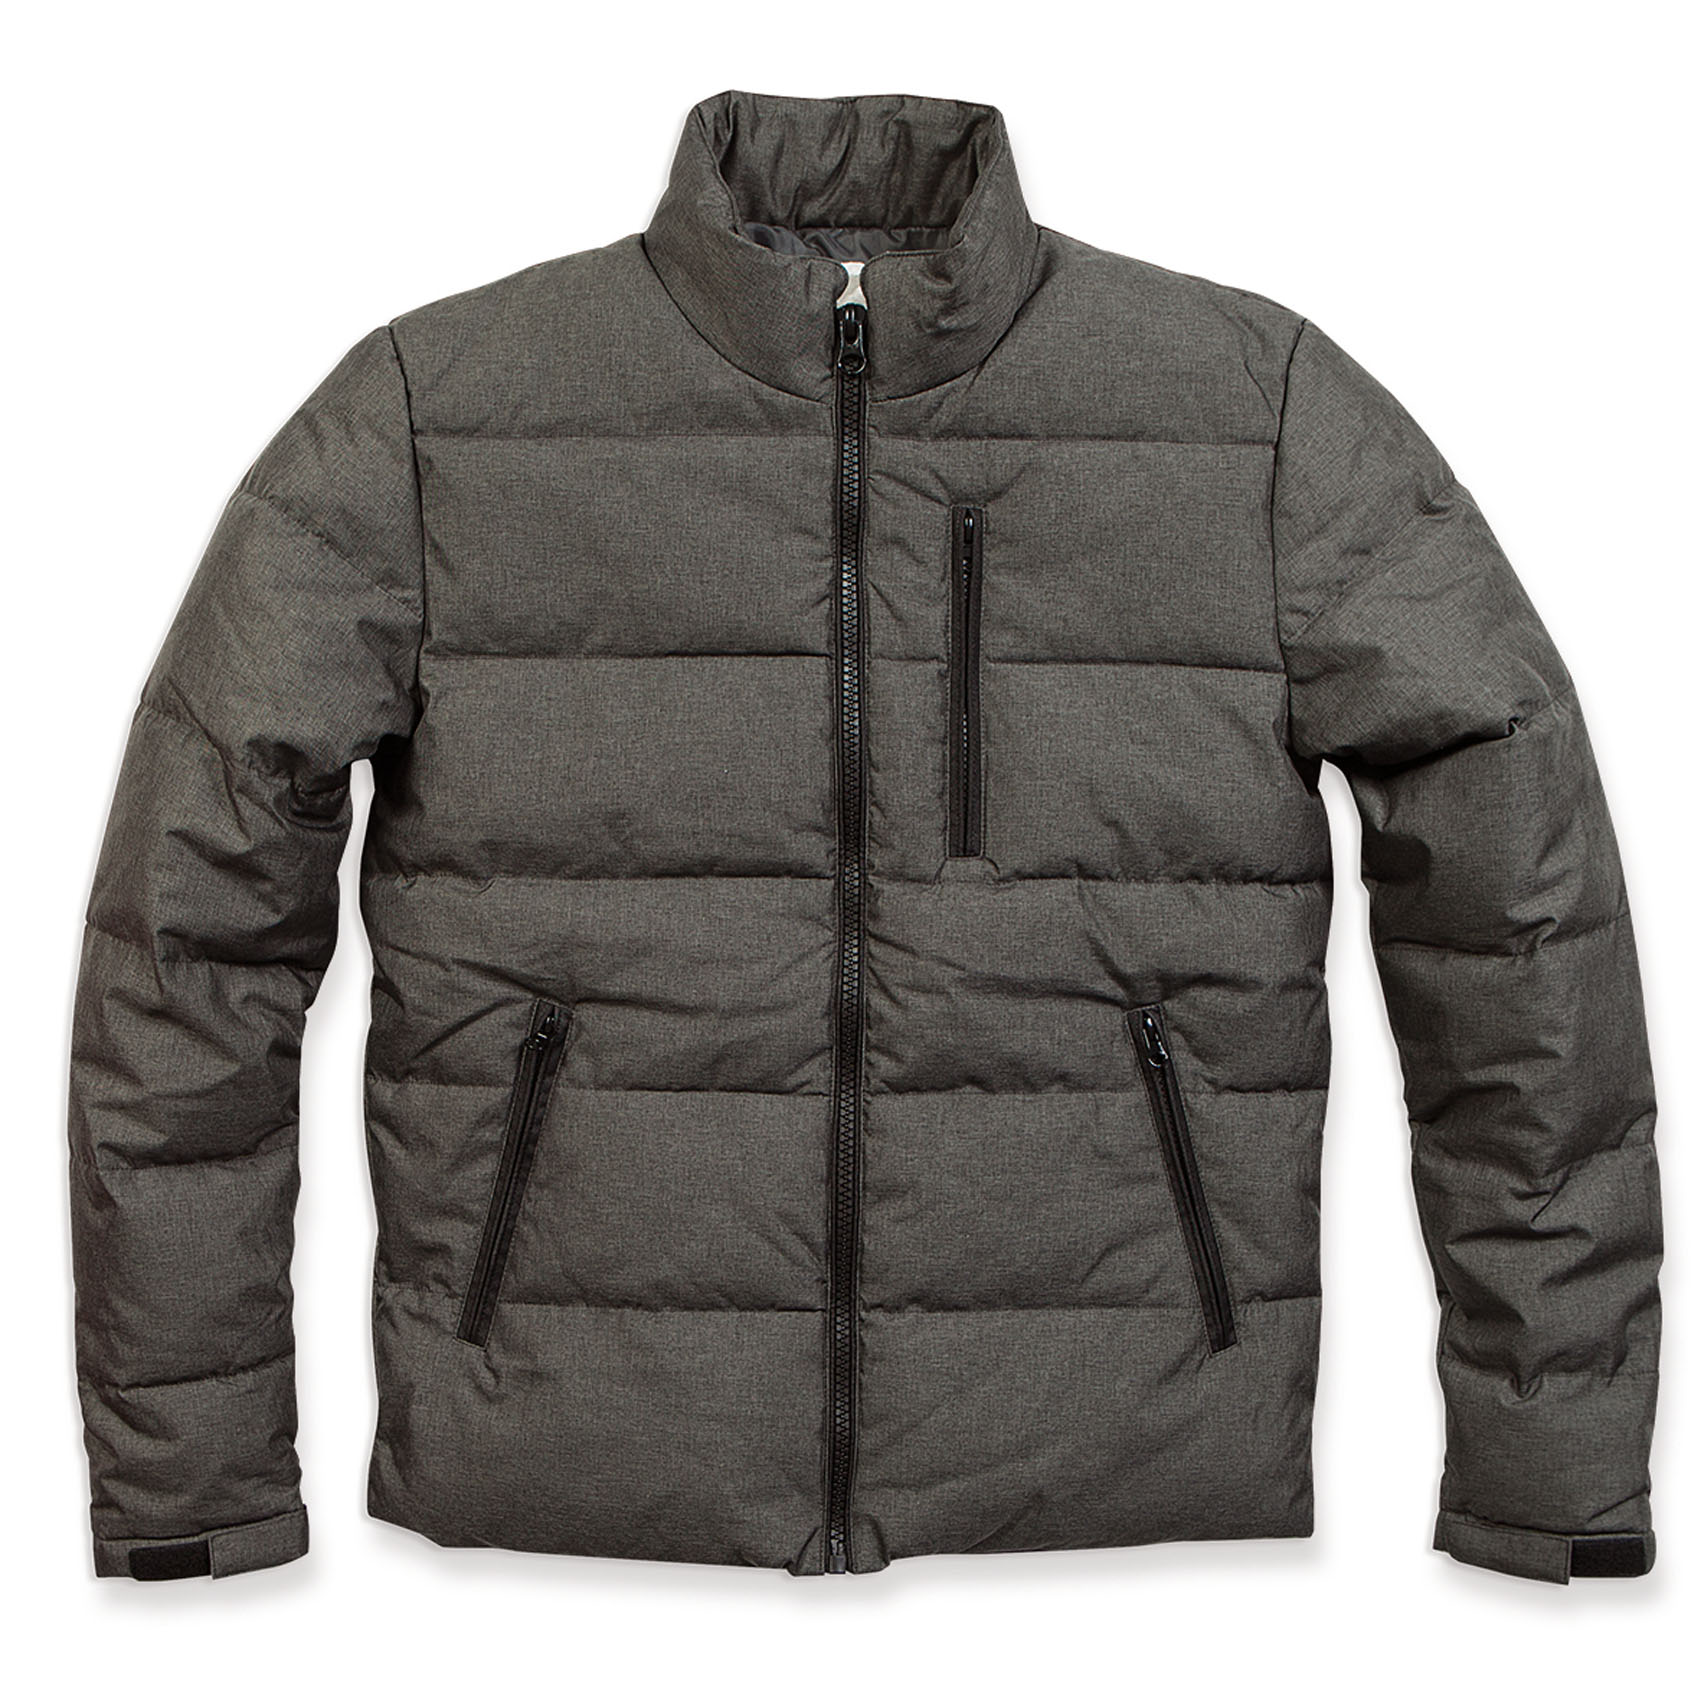 Stedman Urban Padded Jacket Active for him